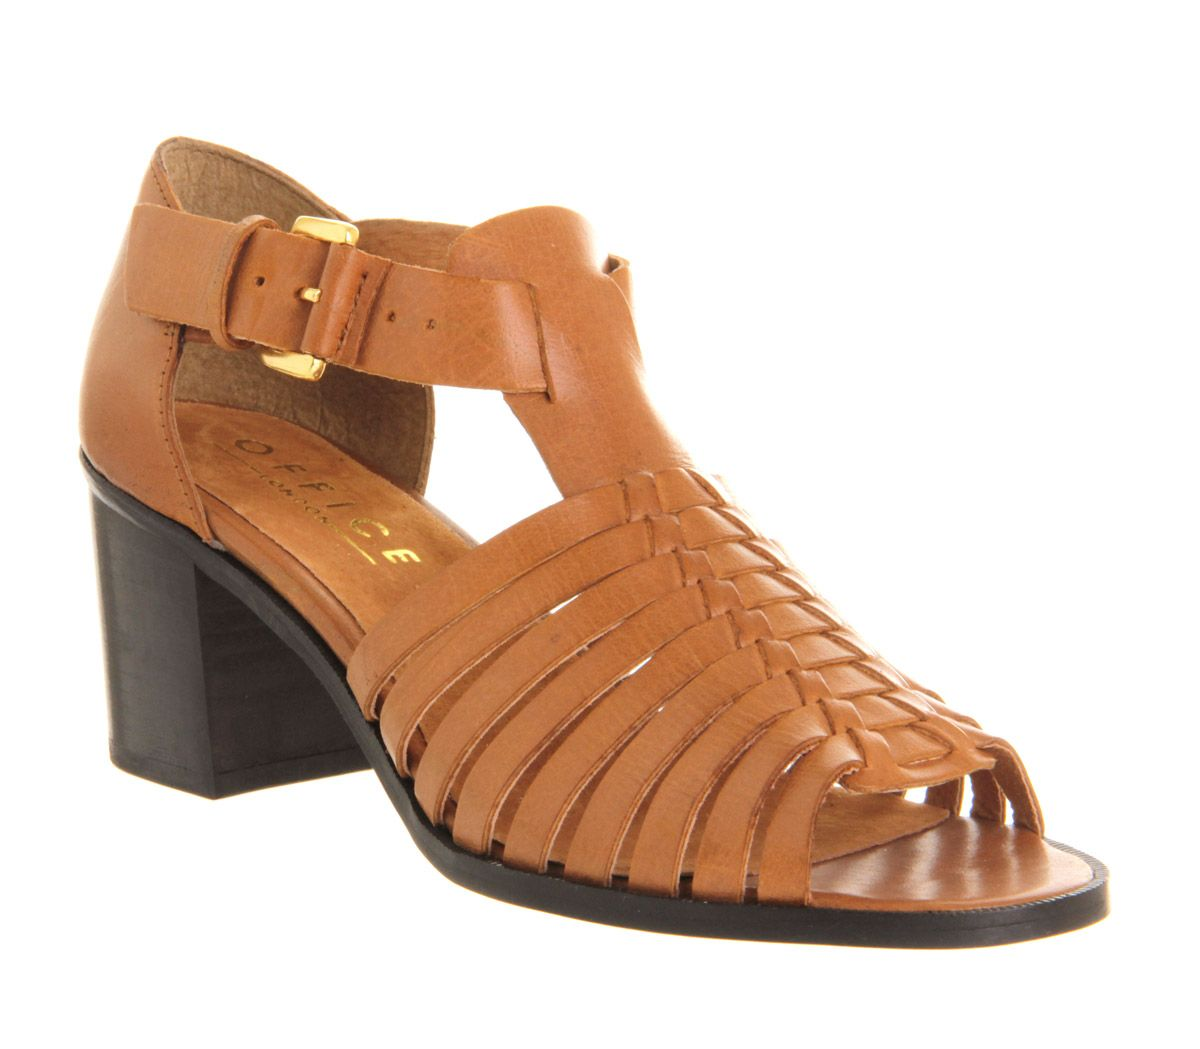 Dahlia weave leather open toe block heel sandals